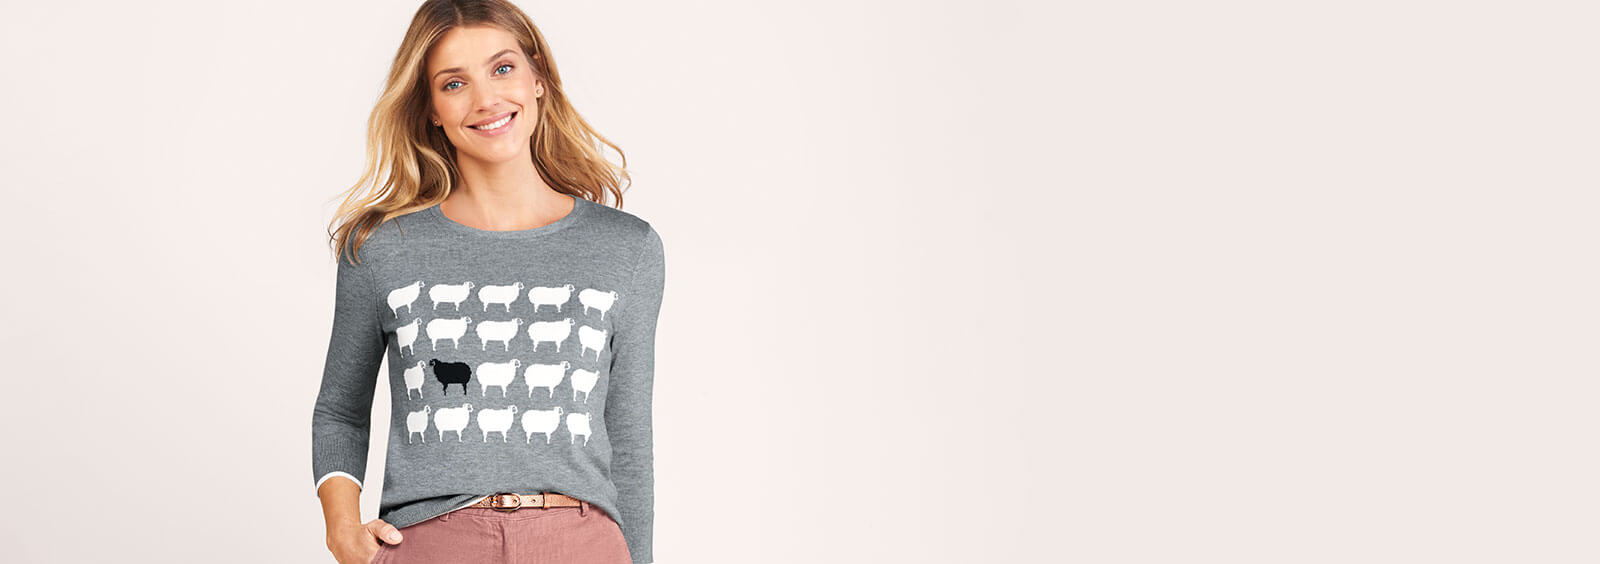 Sheep Sweater - Story of Black Sheep Sweater | Lands' End